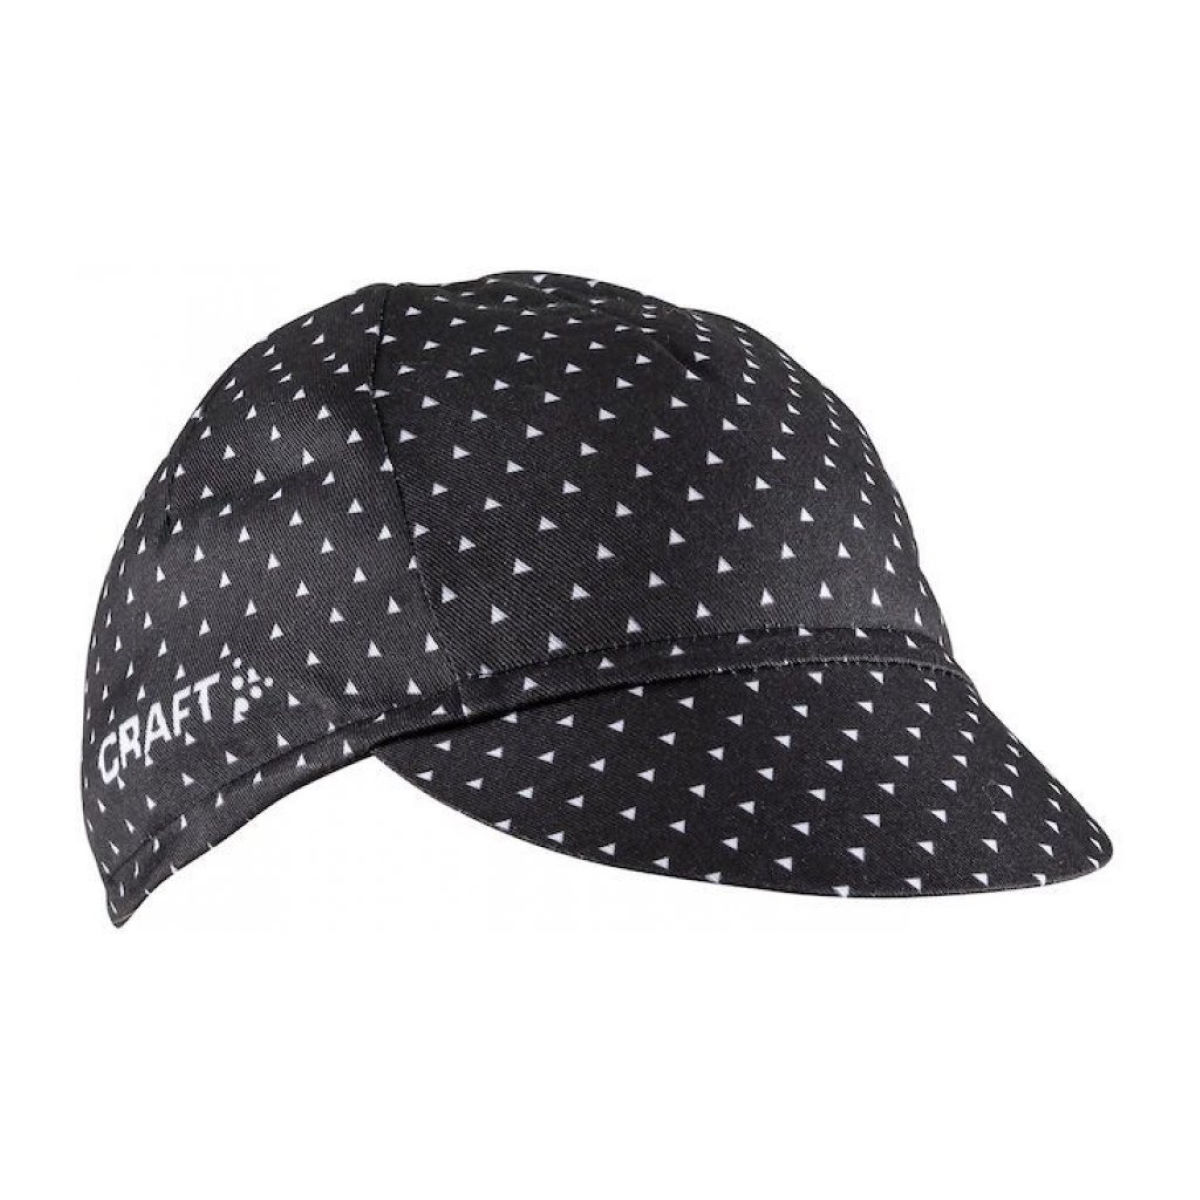 Craft Race Bike Cap - Gorras de ciclismo